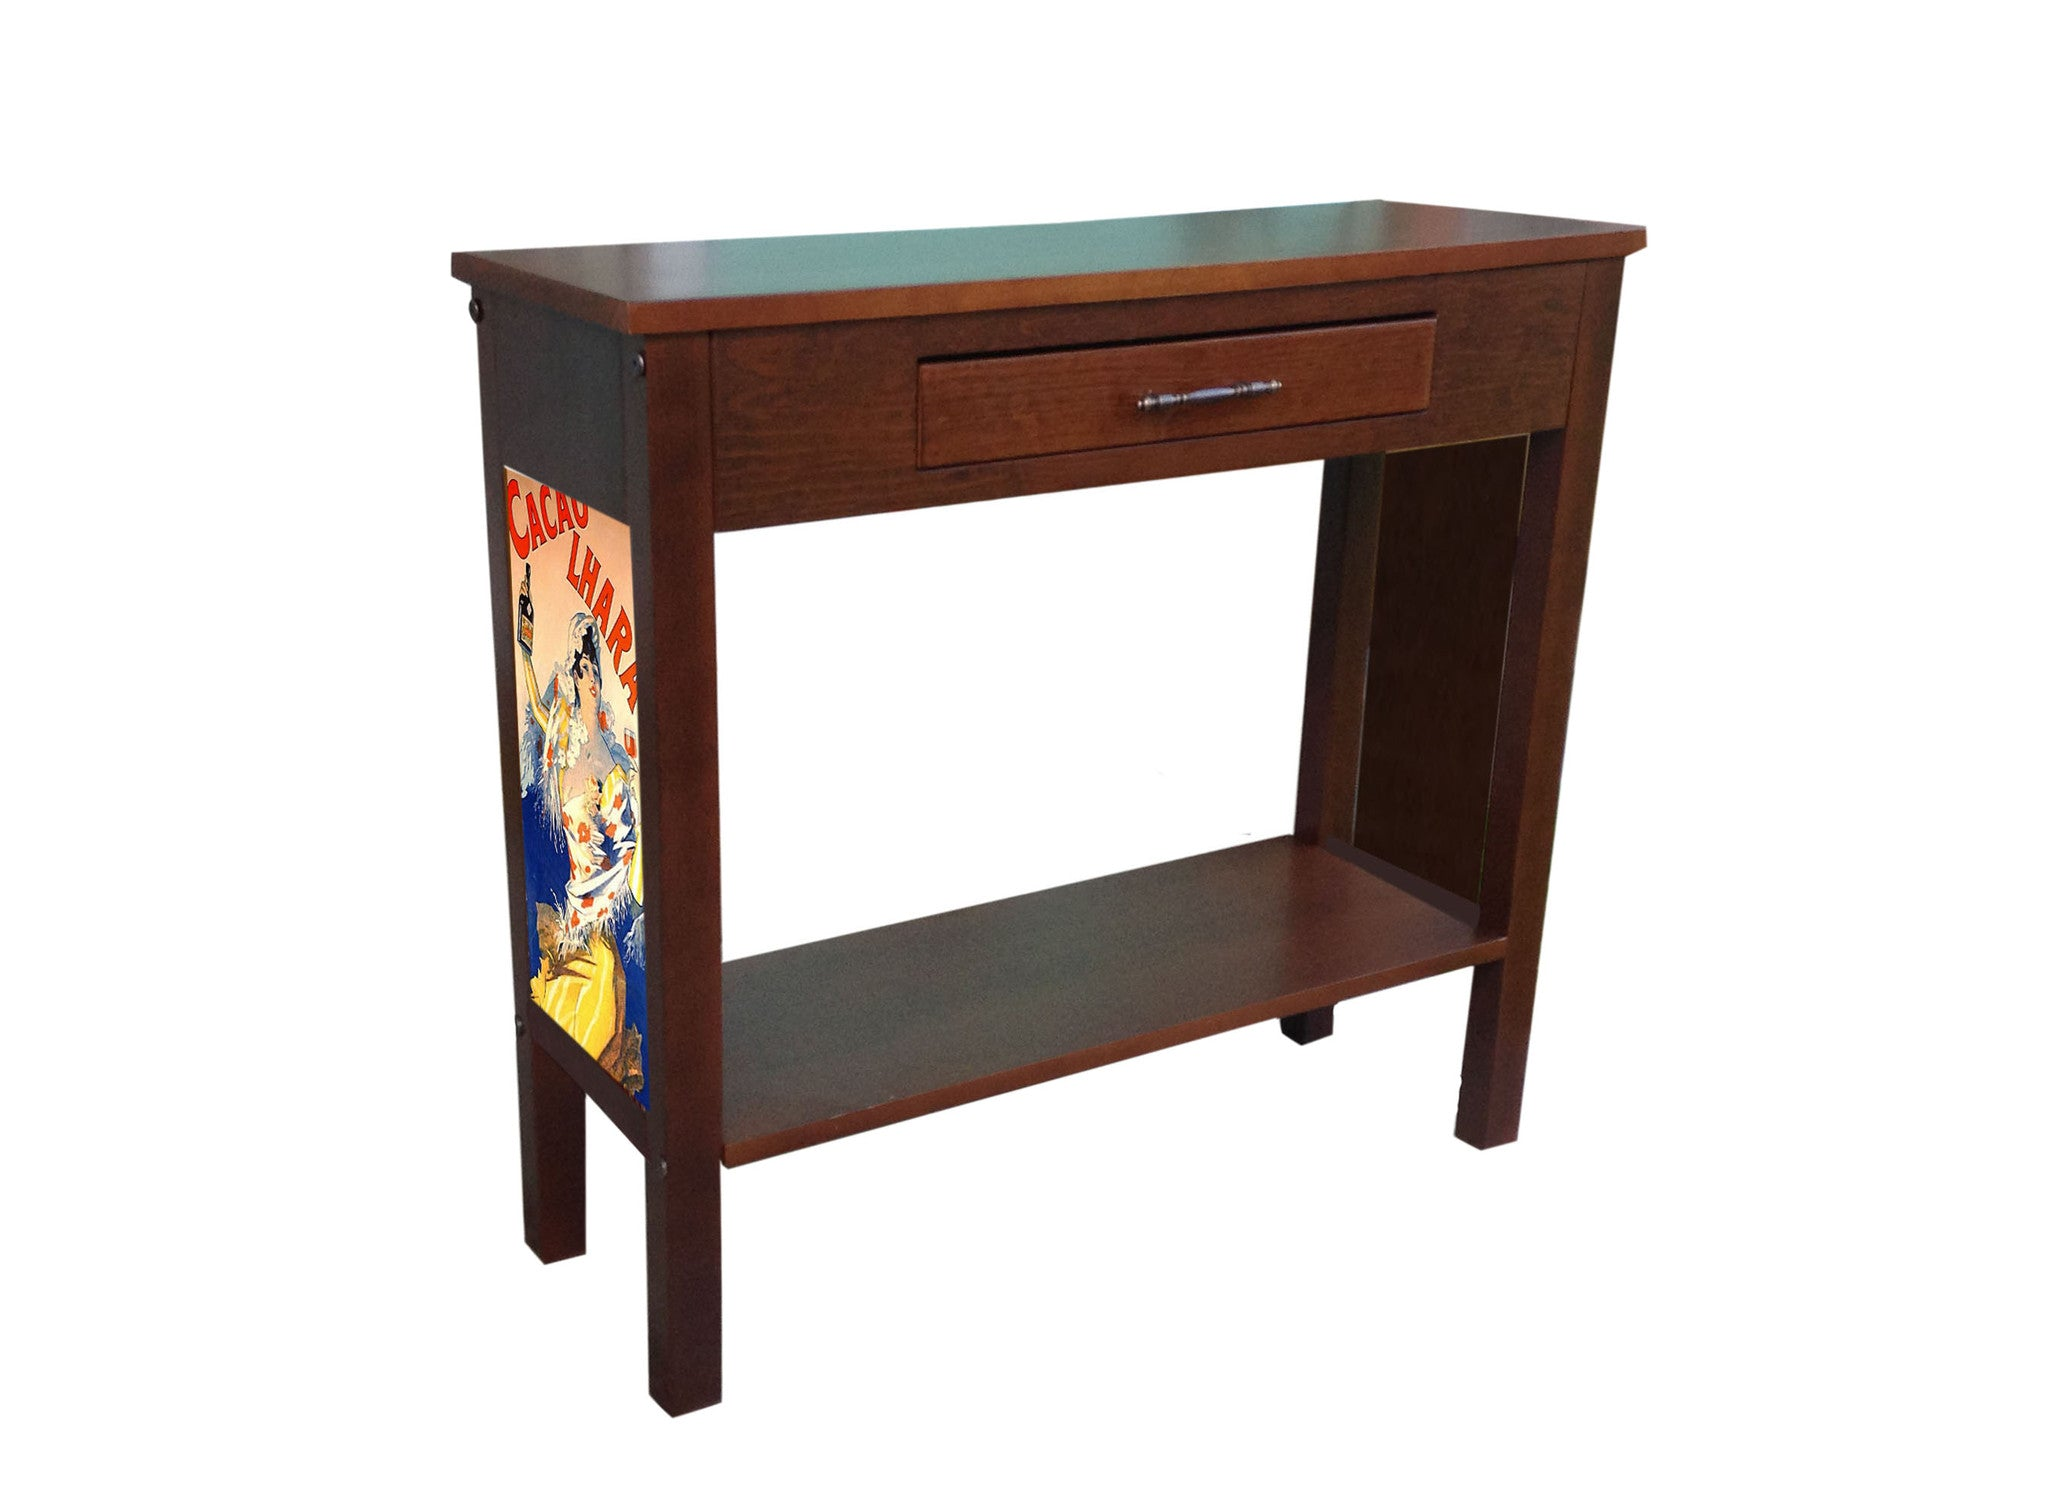 Jules Cheret entryway table with Cacao Lhara